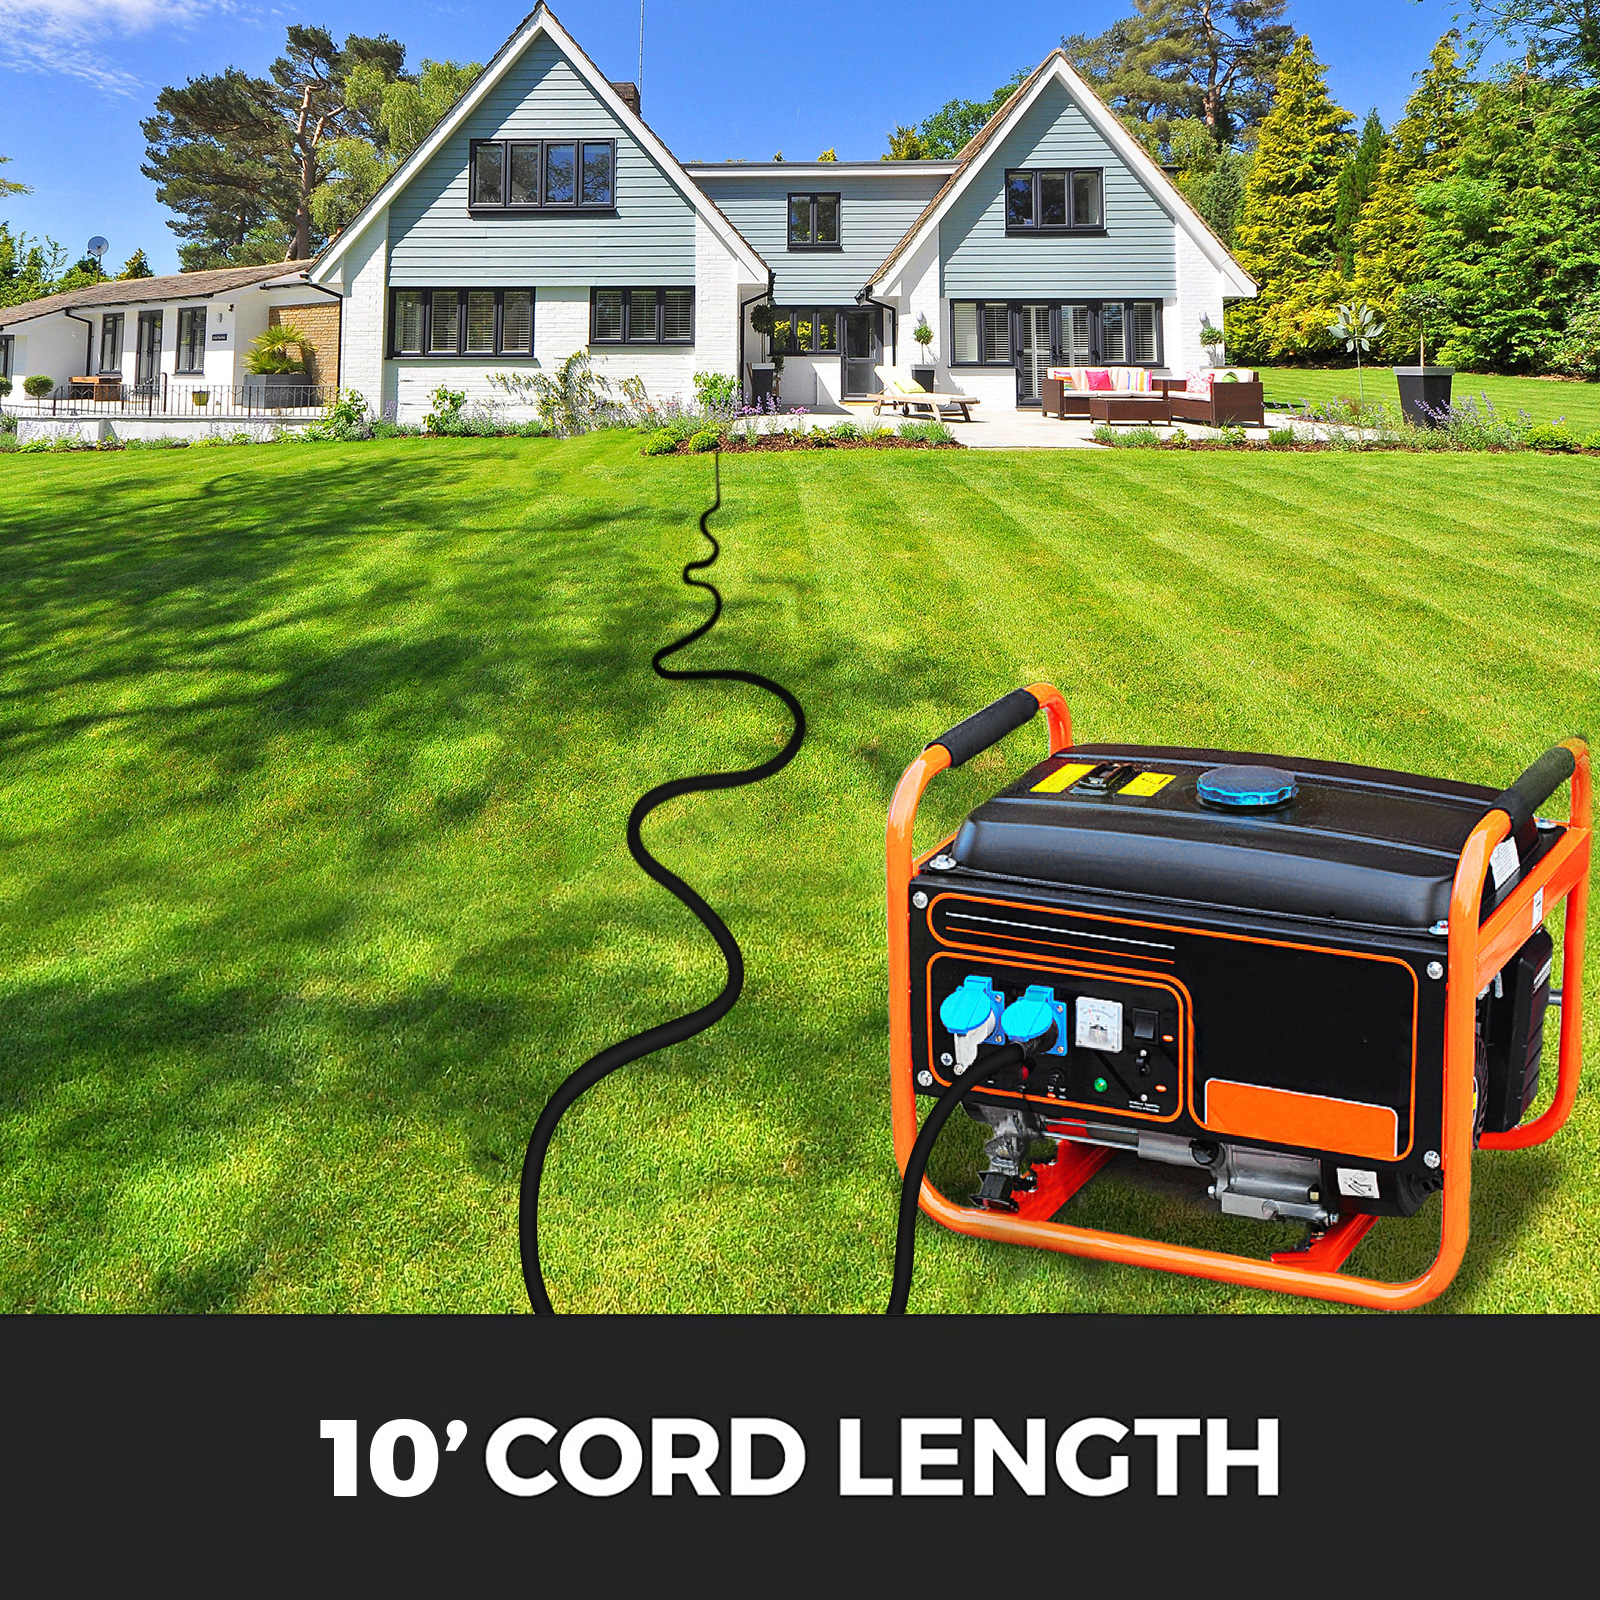 Generator-Extension-Cord-10-50ft-10-4-Power-Cable-30A-Adapter-Plug-Copper-Wire miniature 16